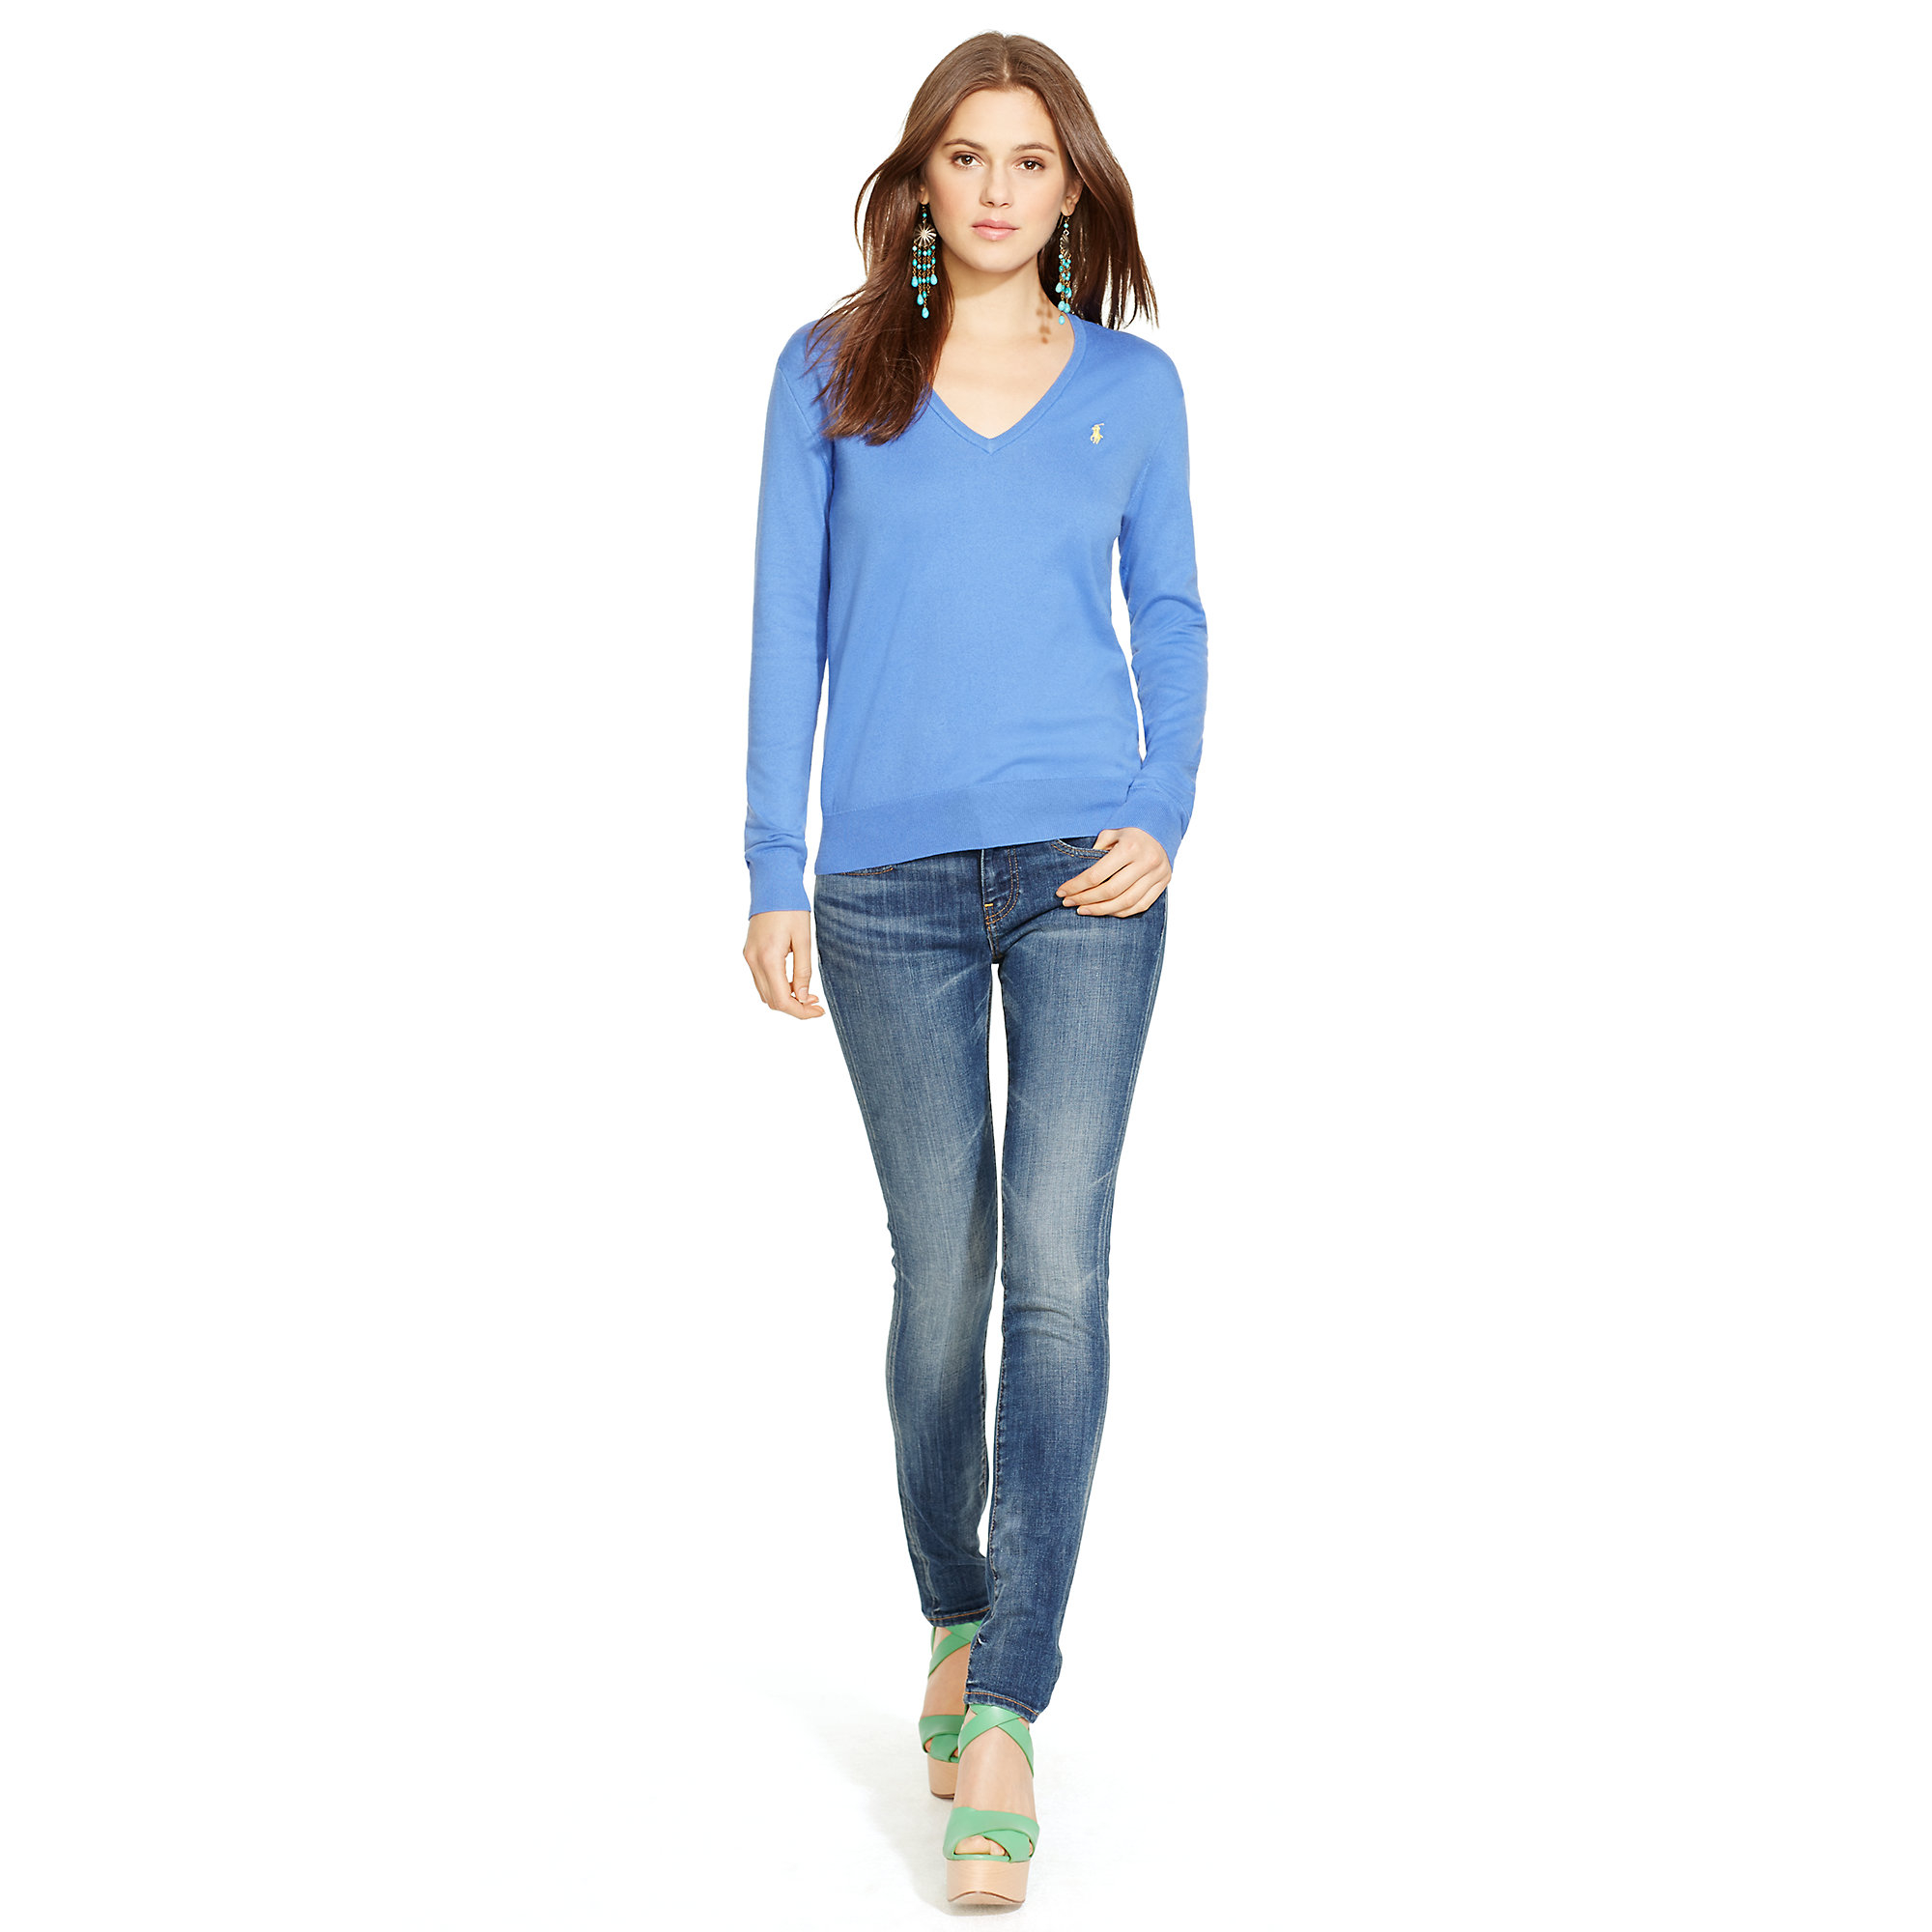 Lyst - Polo Ralph Lauren Cotton-Blend V-Neck Sweater in Blue 8f8be3468